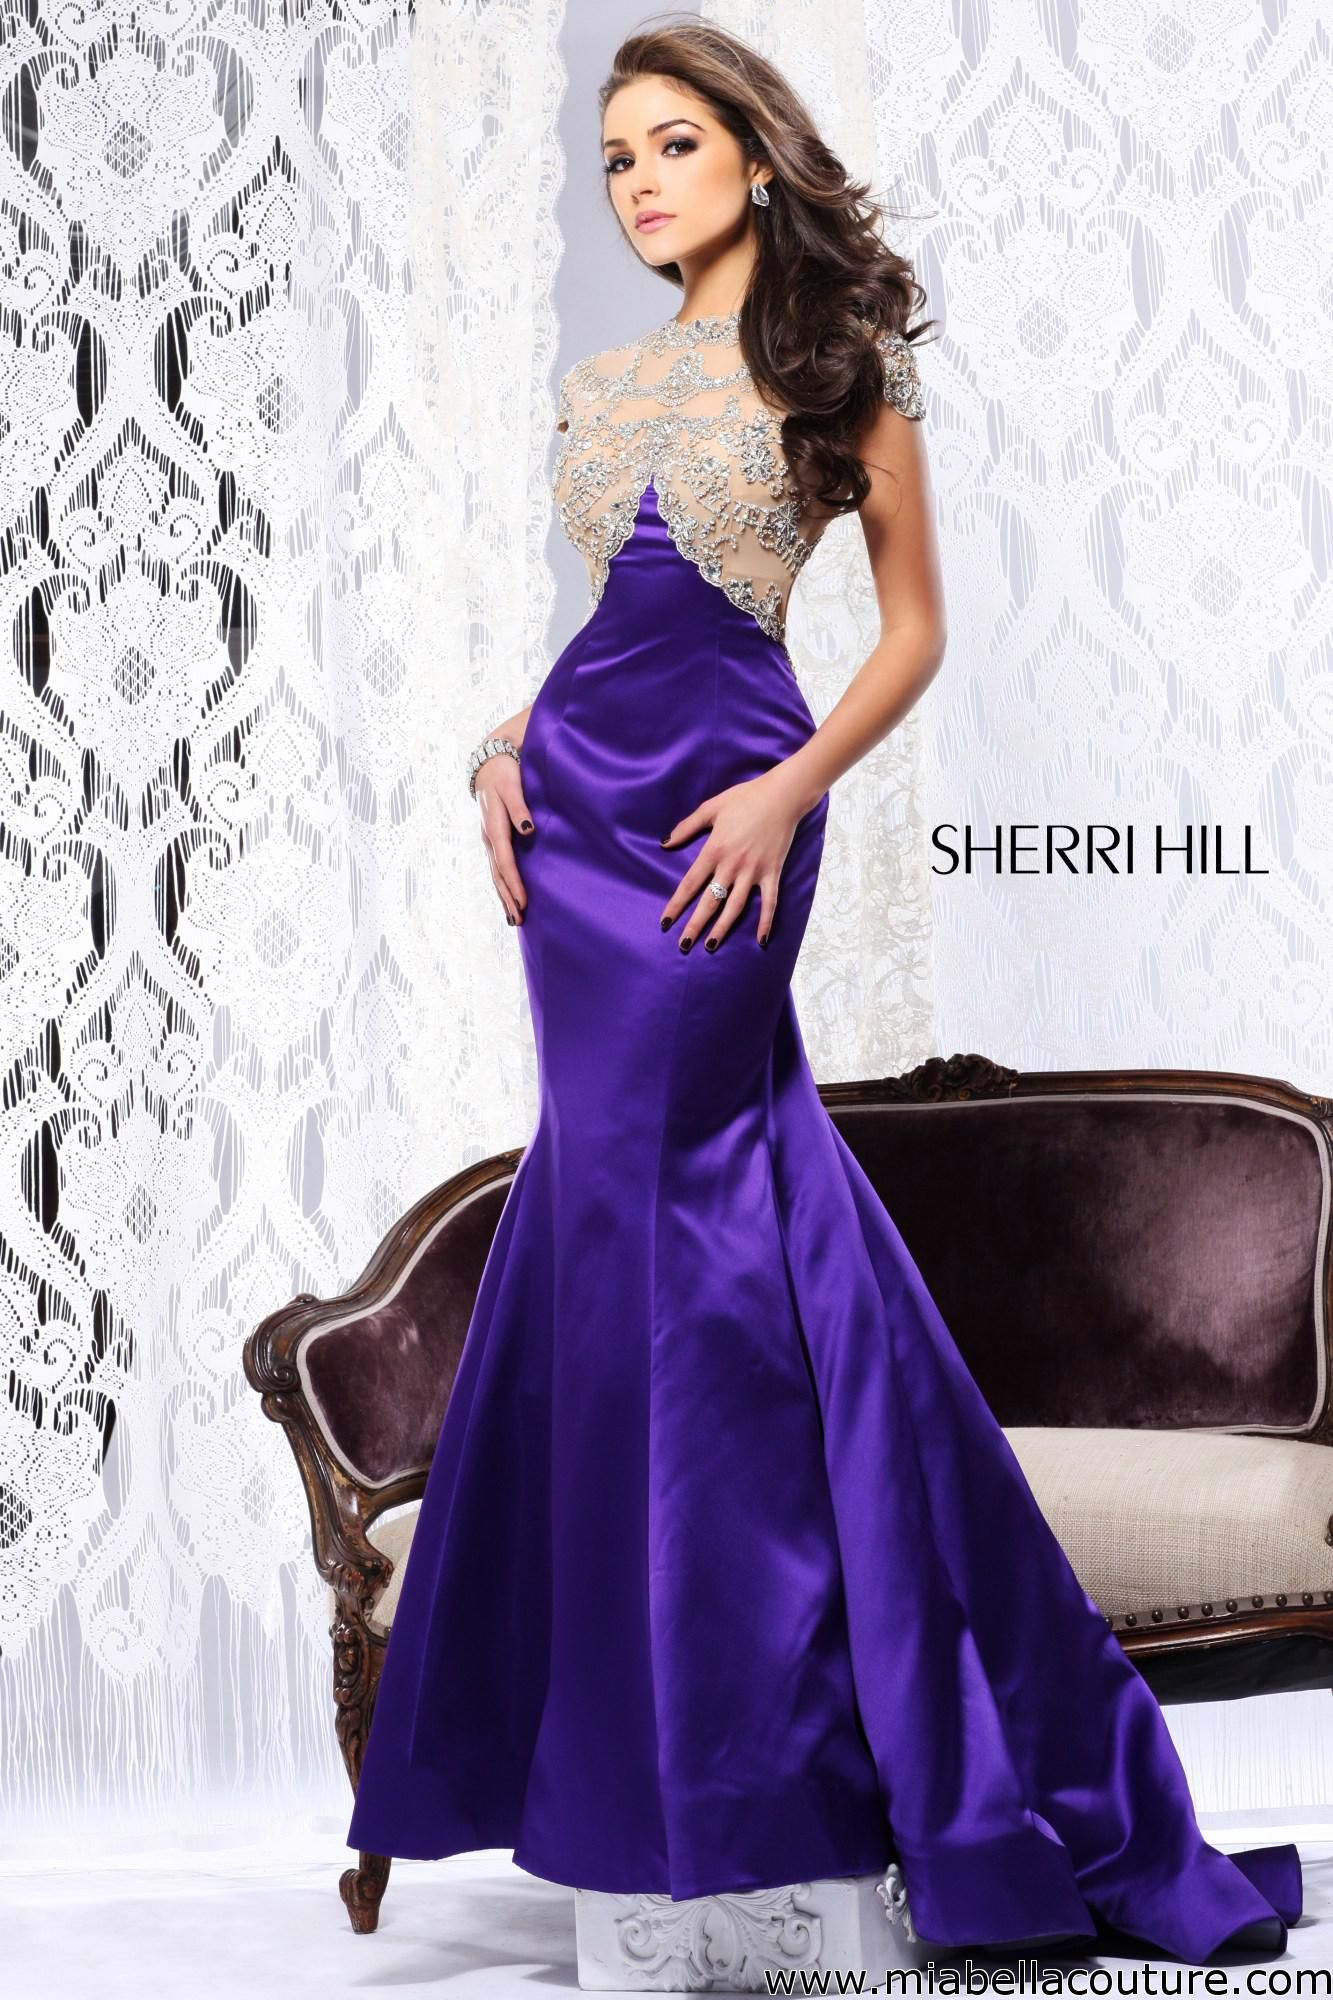 Sherri Hill style # 12.. This mermaid style evening gown is